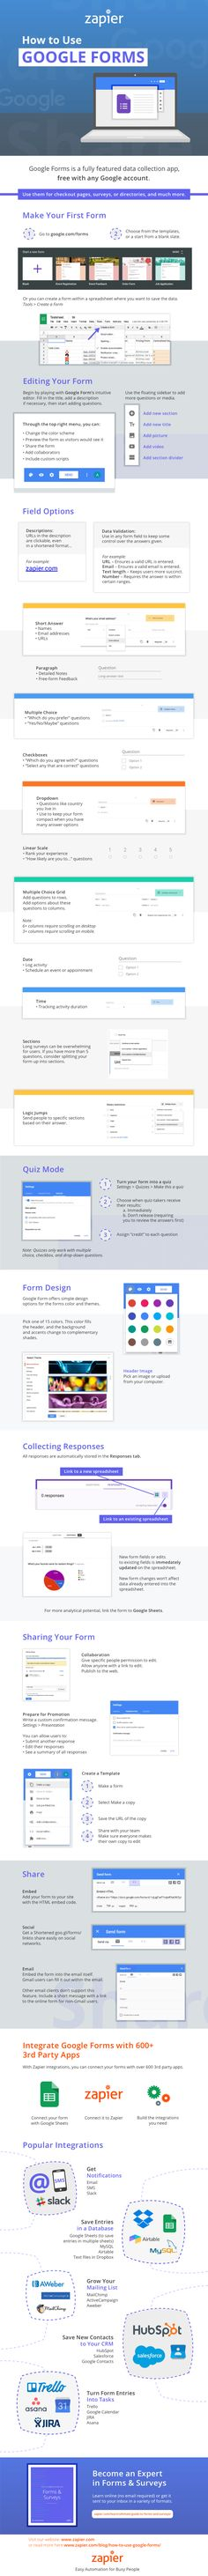 Learn How To Master Google Forms With This Handy Visual Guide | Lifehacker Australia